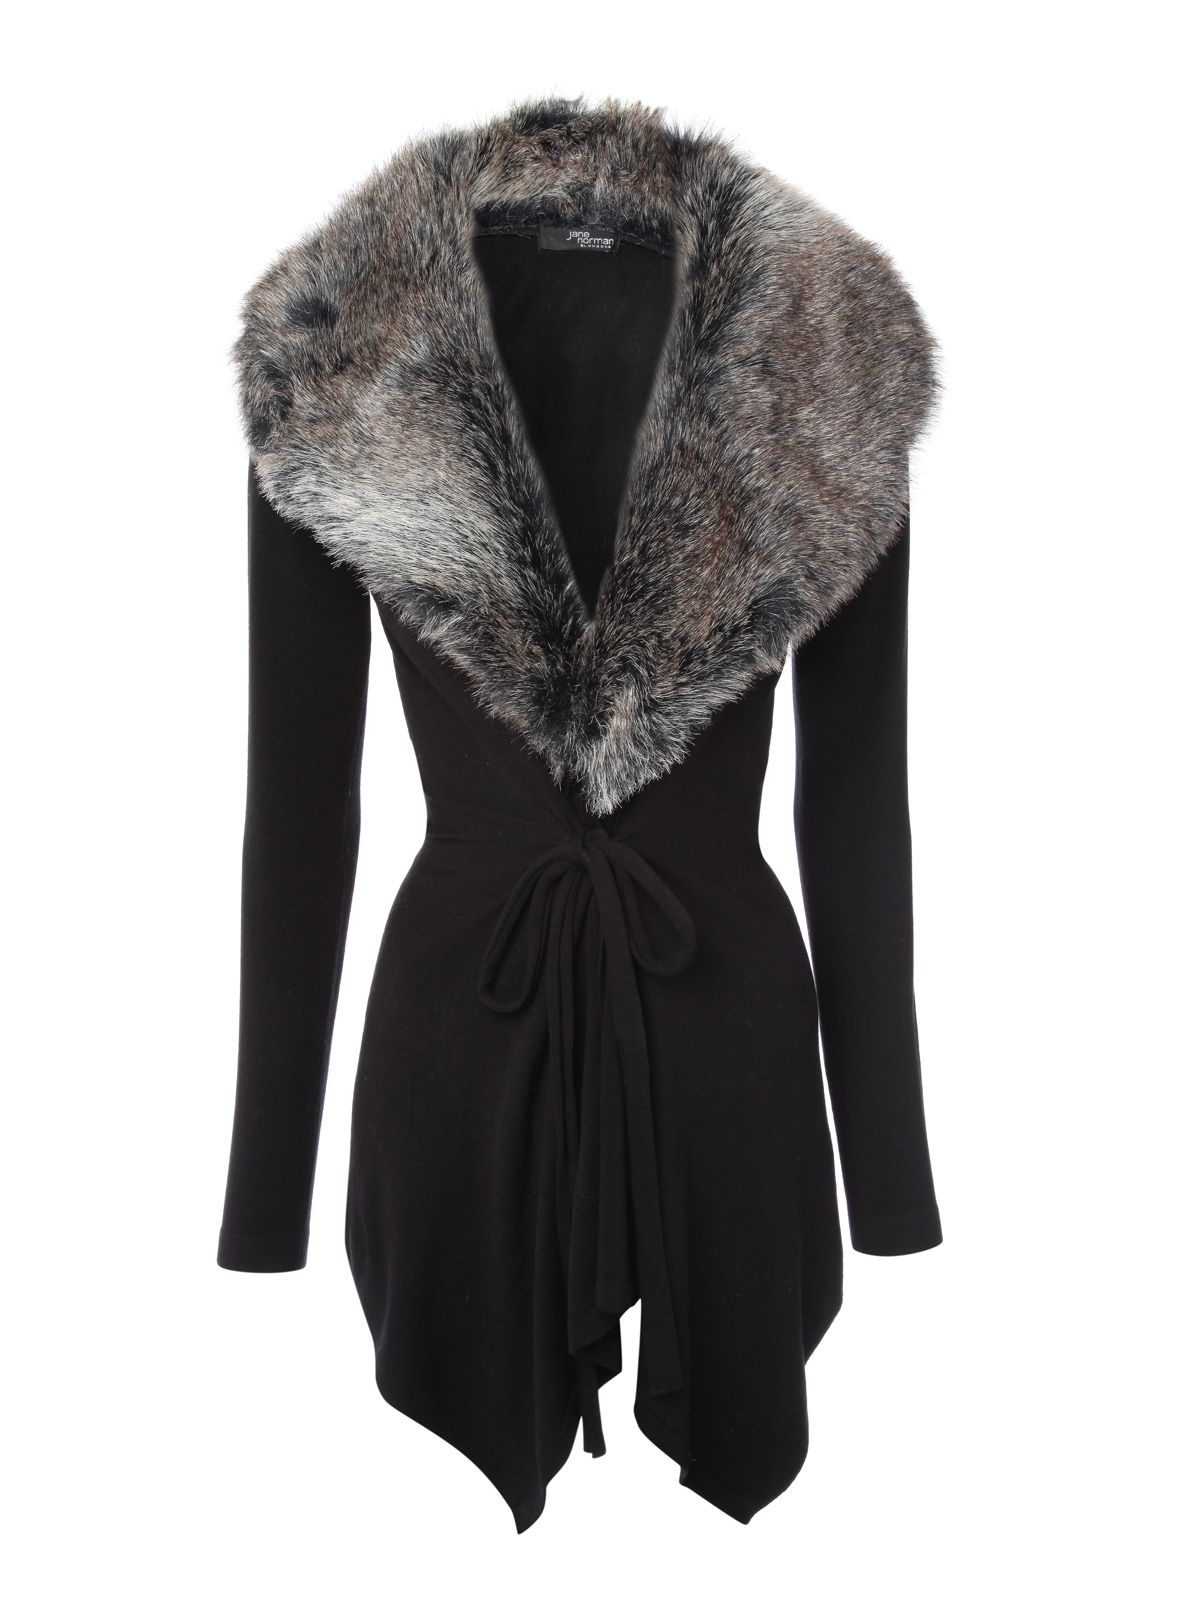 Shop for fur collar cardigan online at Target. Free shipping on purchases over $35 and save 5% every day with your Target REDcard.